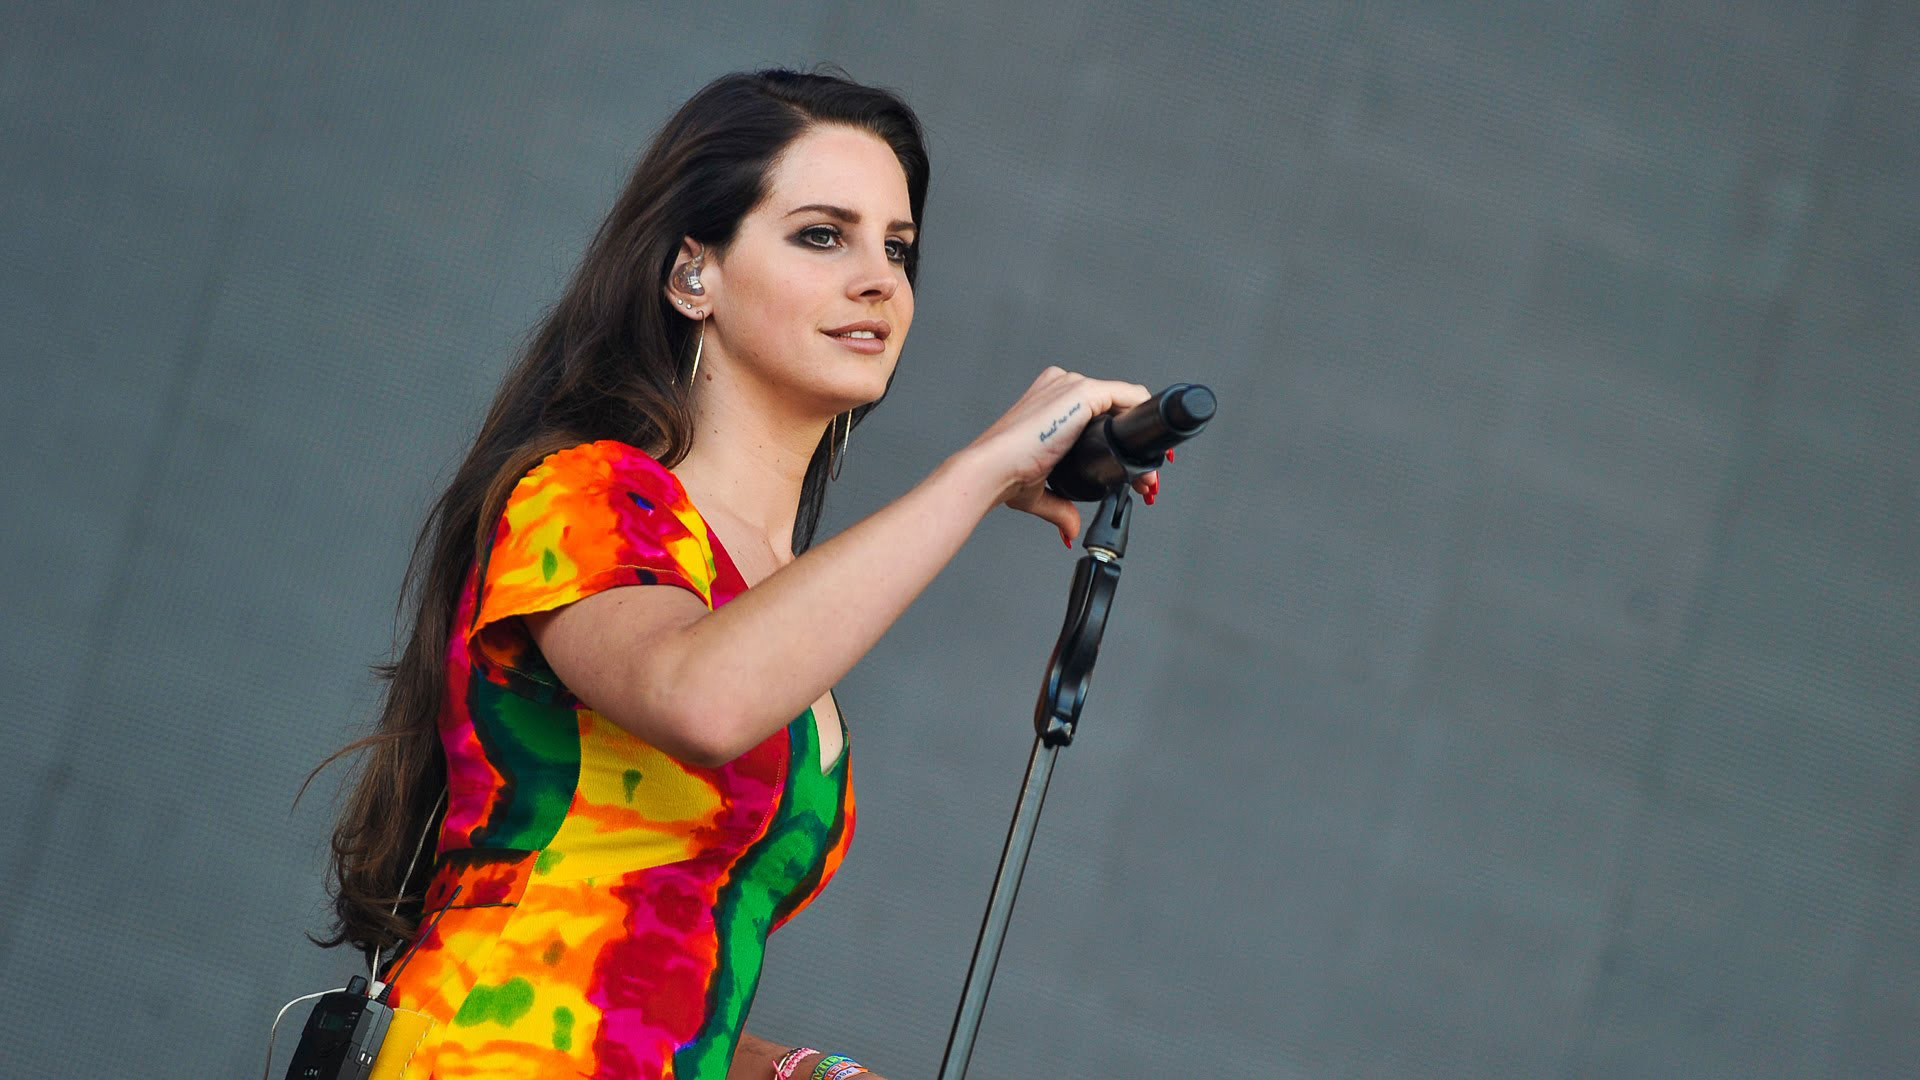 55 Hot Pictures Of Lana Del Rey Are Heaven On Earth